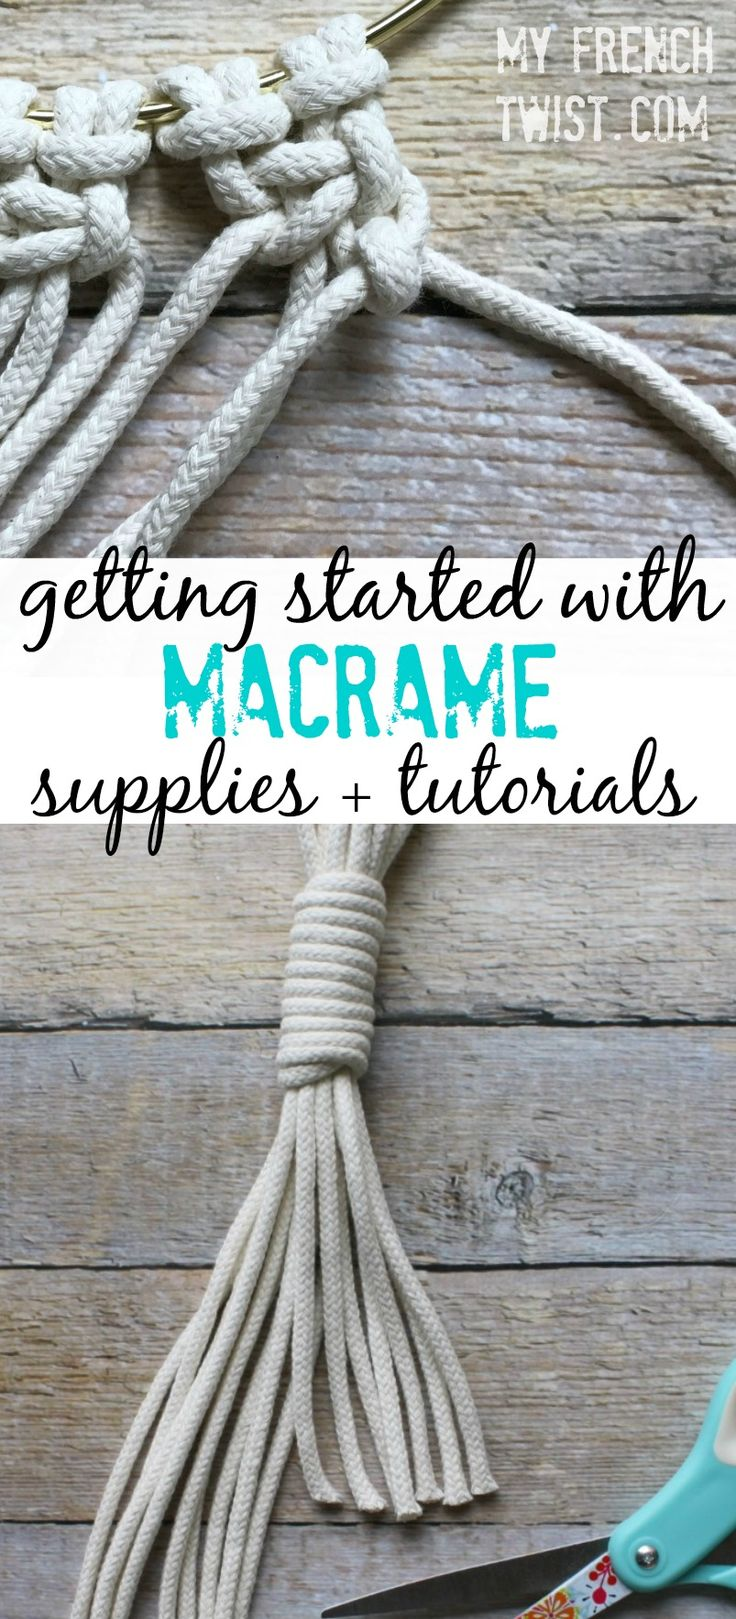 Ready to get started with macrame? Here are 3 great beginner tutorials! http://www.myfrenchtwist.com/getting-started-macrame-supplies-tutorials/